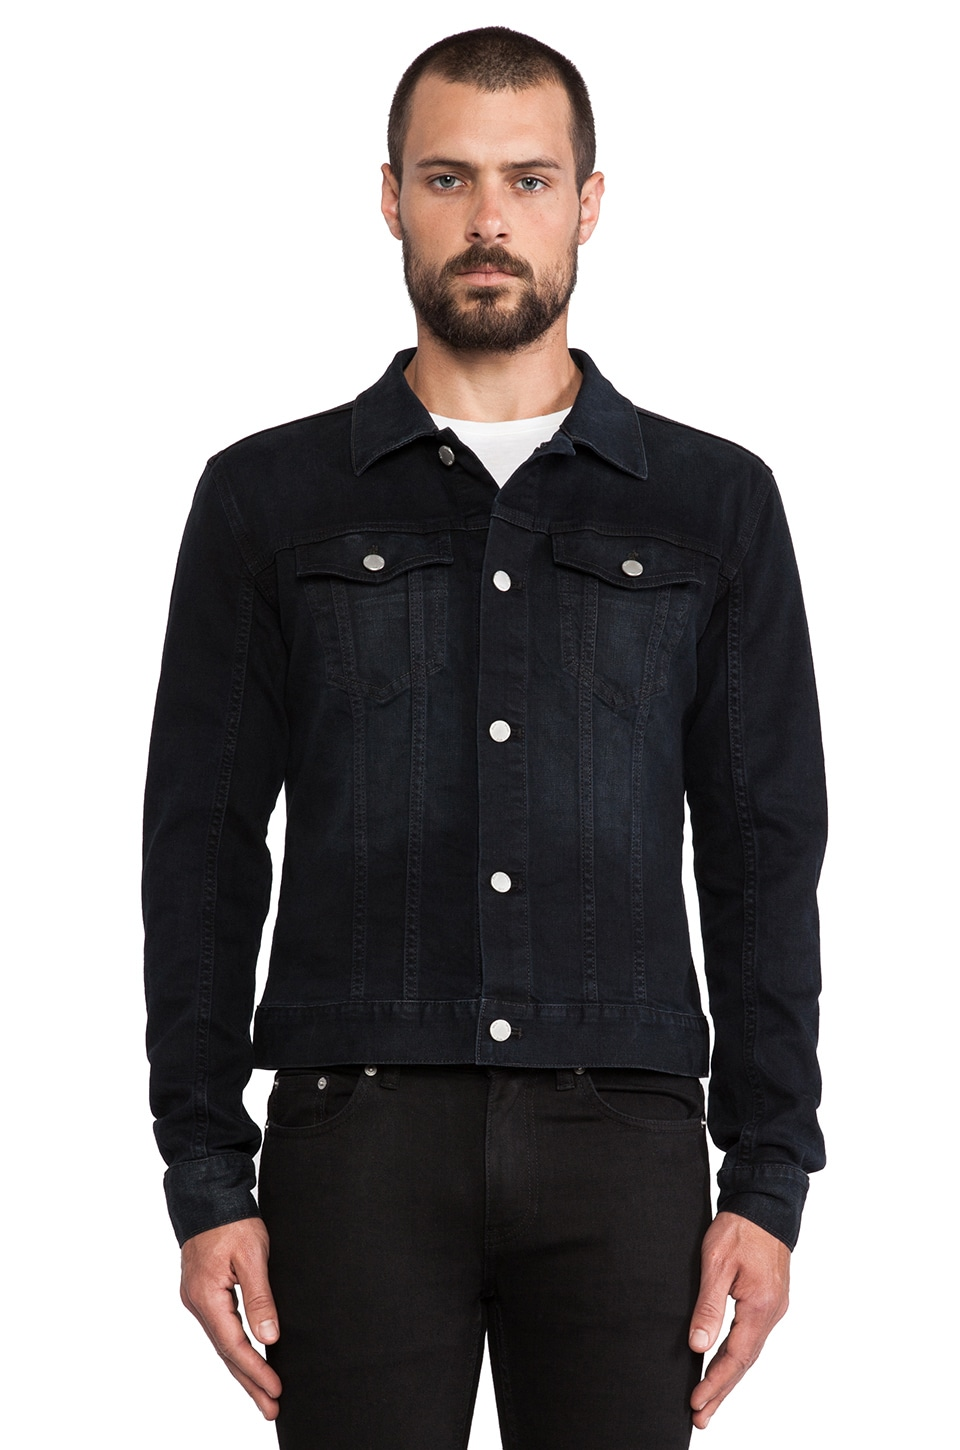 BLK DNM Jean Jacket 5 in Beekman Black